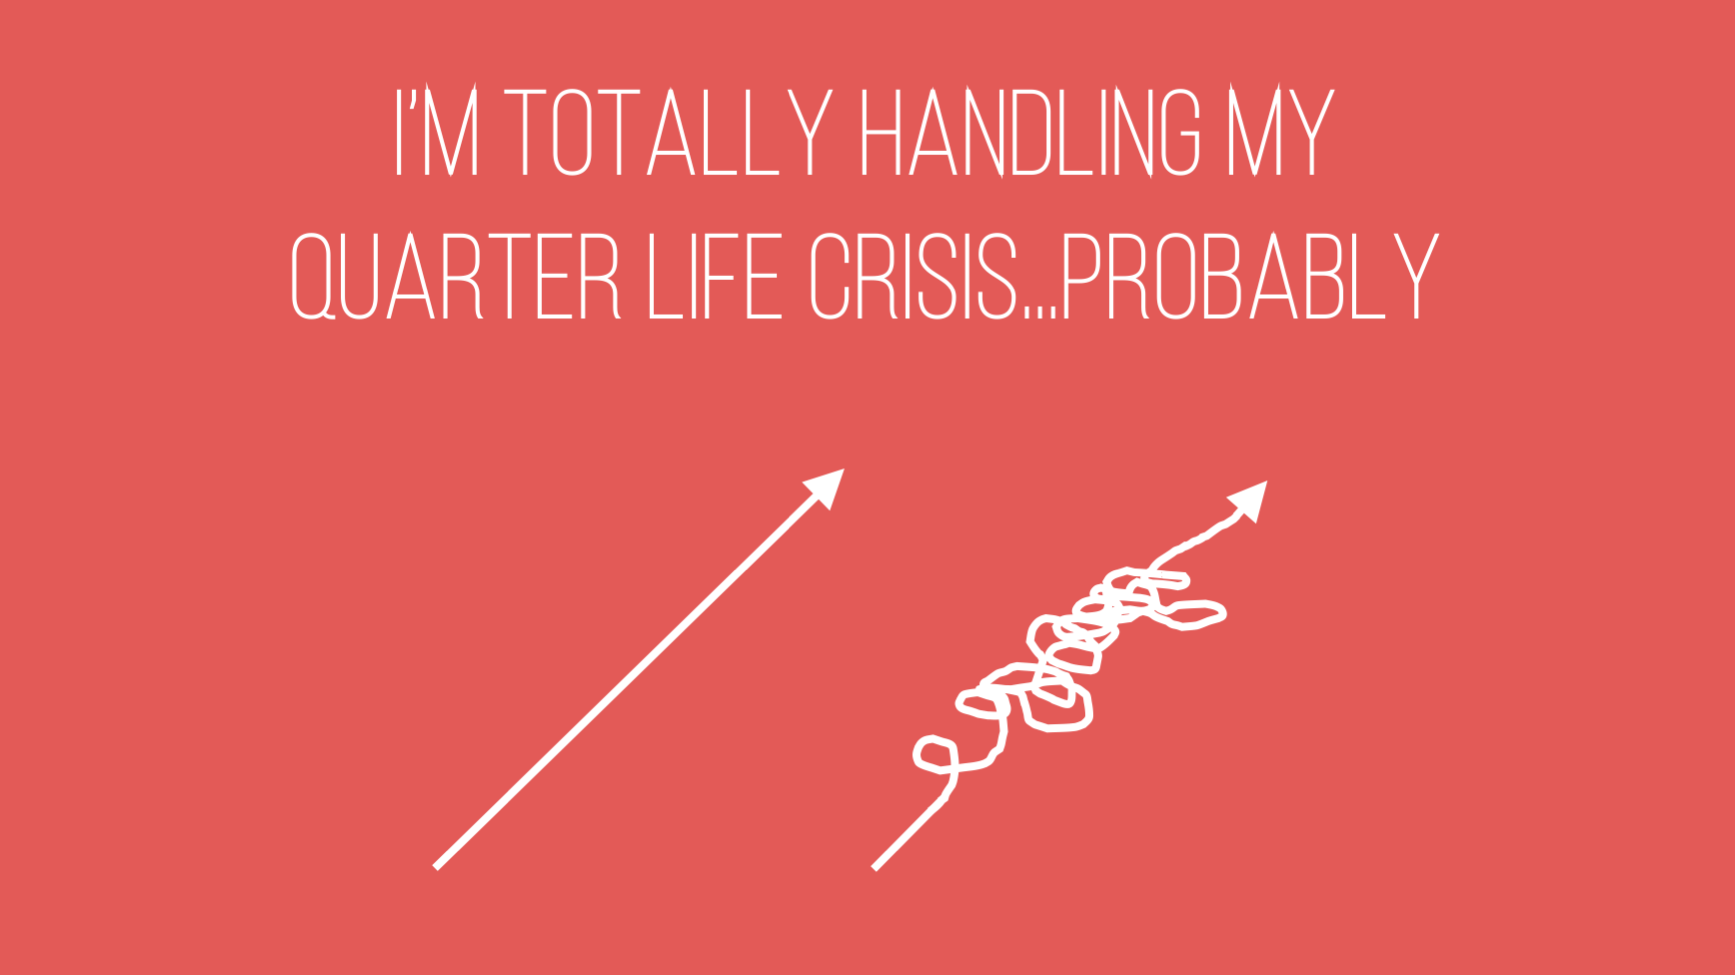 I'm totally handling my quarter life crisis...probably